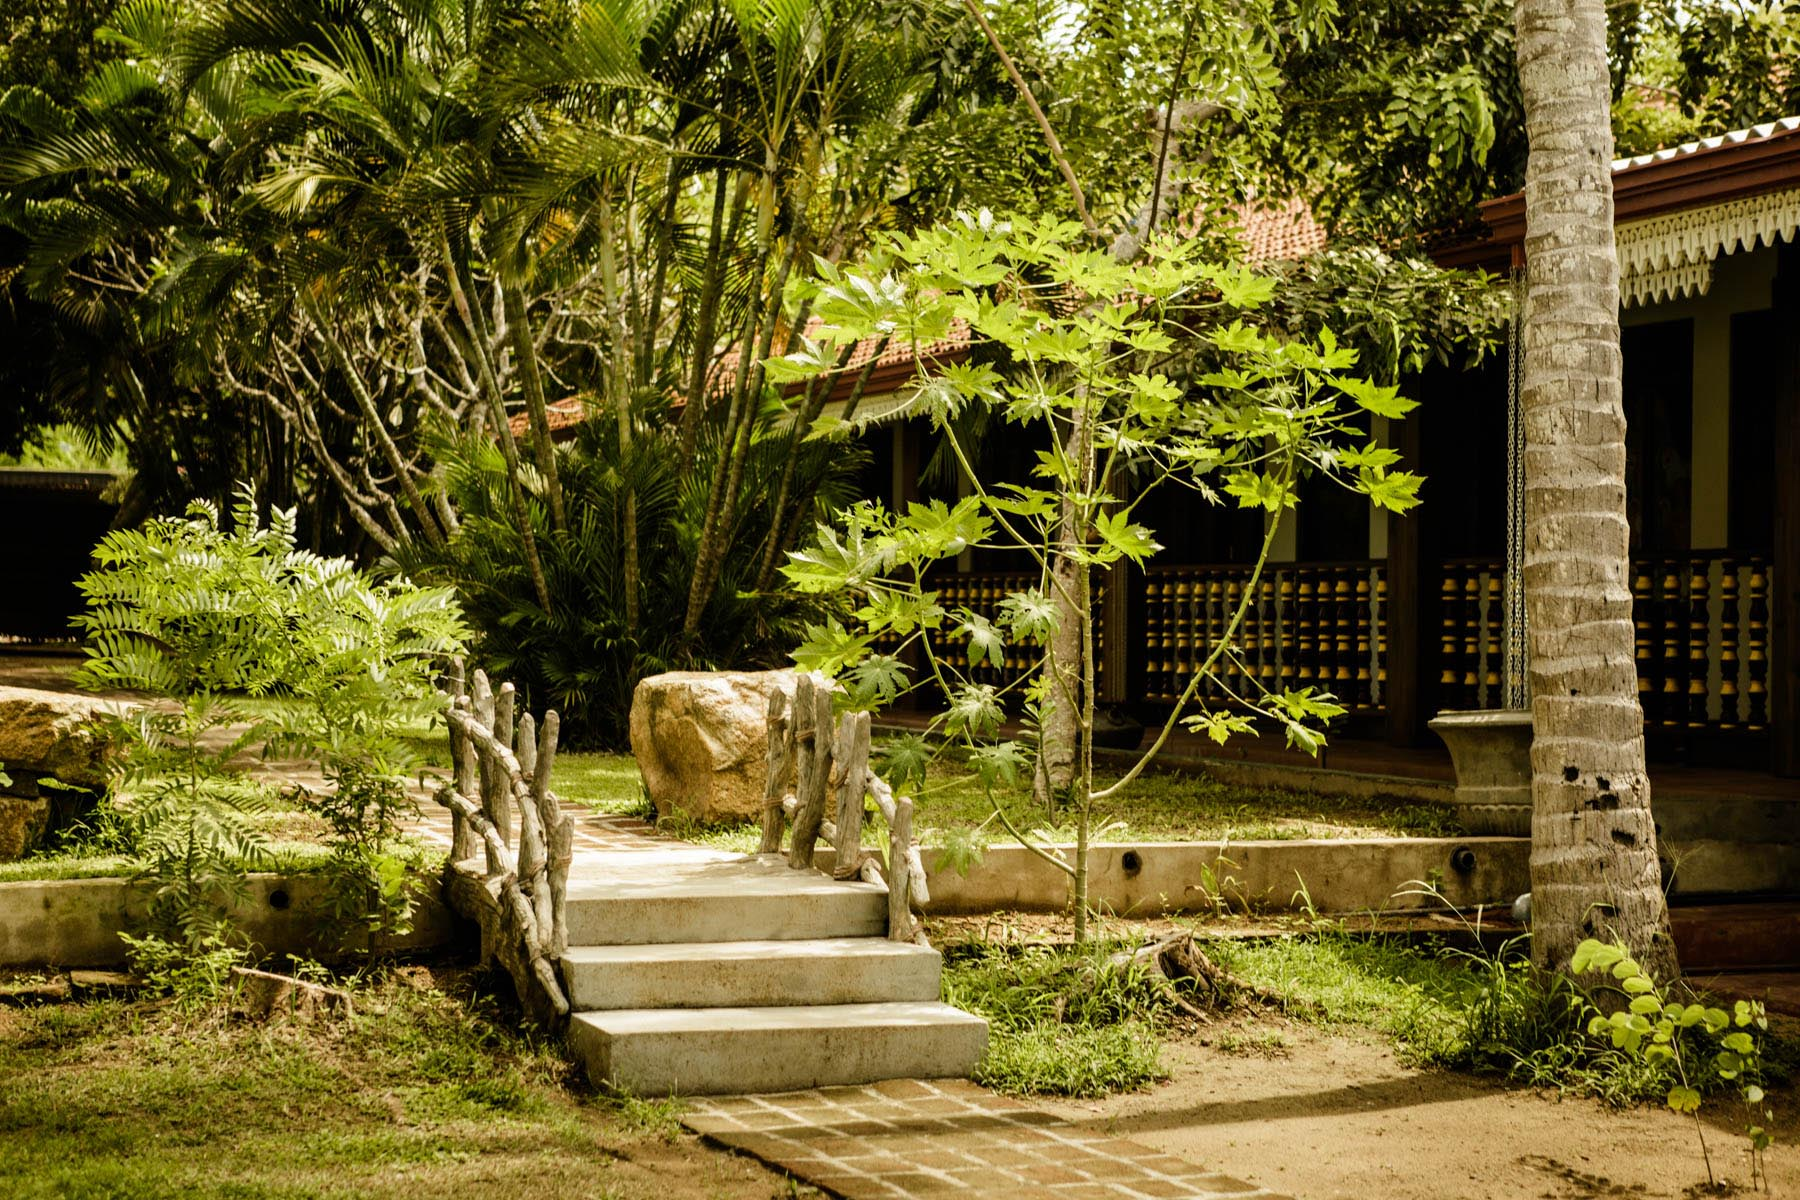 thaulle-resort-sri-lanka-garden-green-philosophie-ayurveda-center